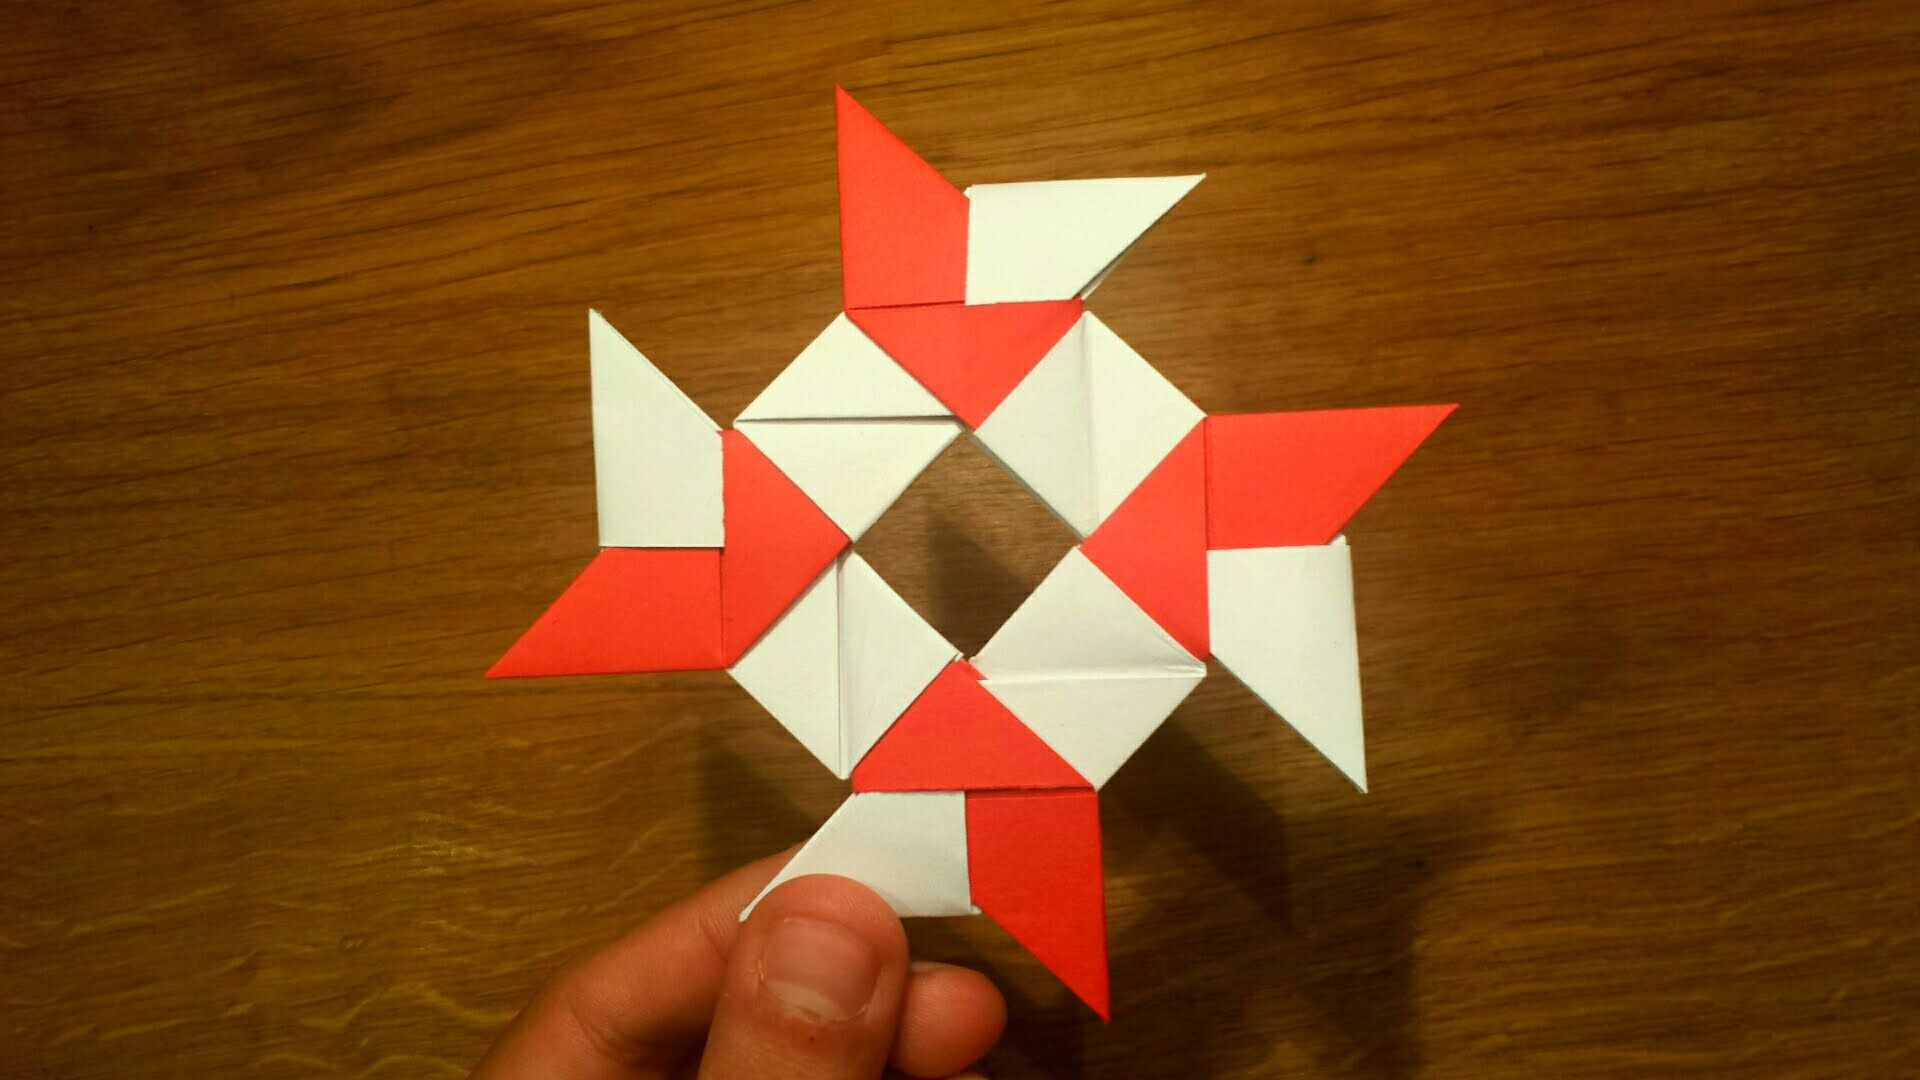 How To Make a Paper 8-pointed Ninja Star - Origami ... - photo#38